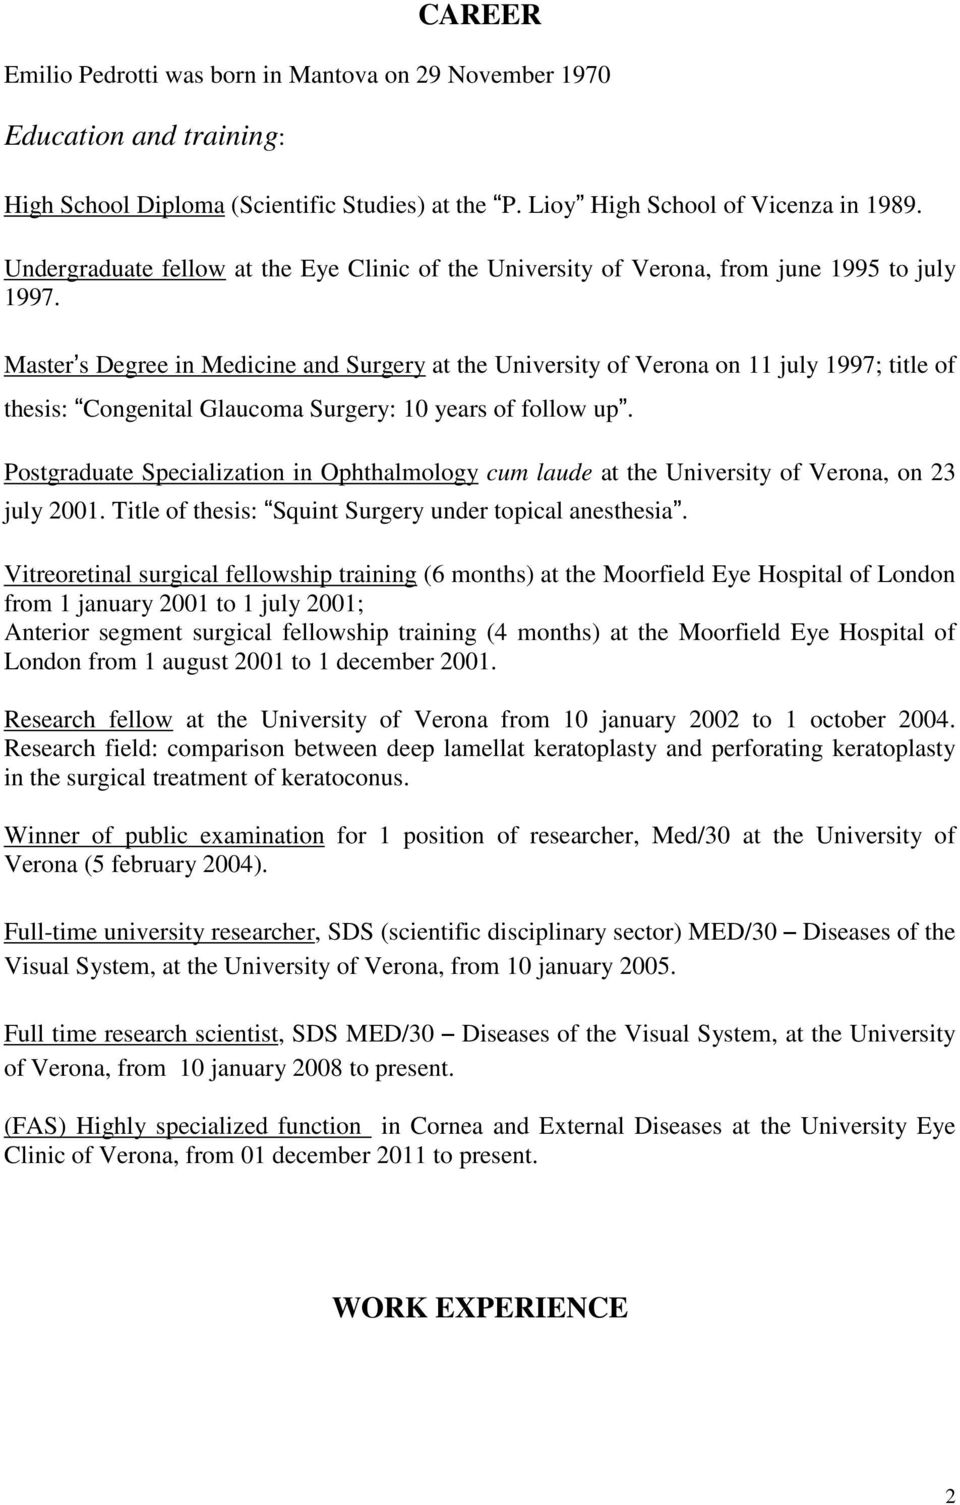 Master s Degree in Medicine and Surgery at the University of Verona on 11 july 1997; title of thesis: Congenital Glaucoma Surgery: 10 years of follow up.